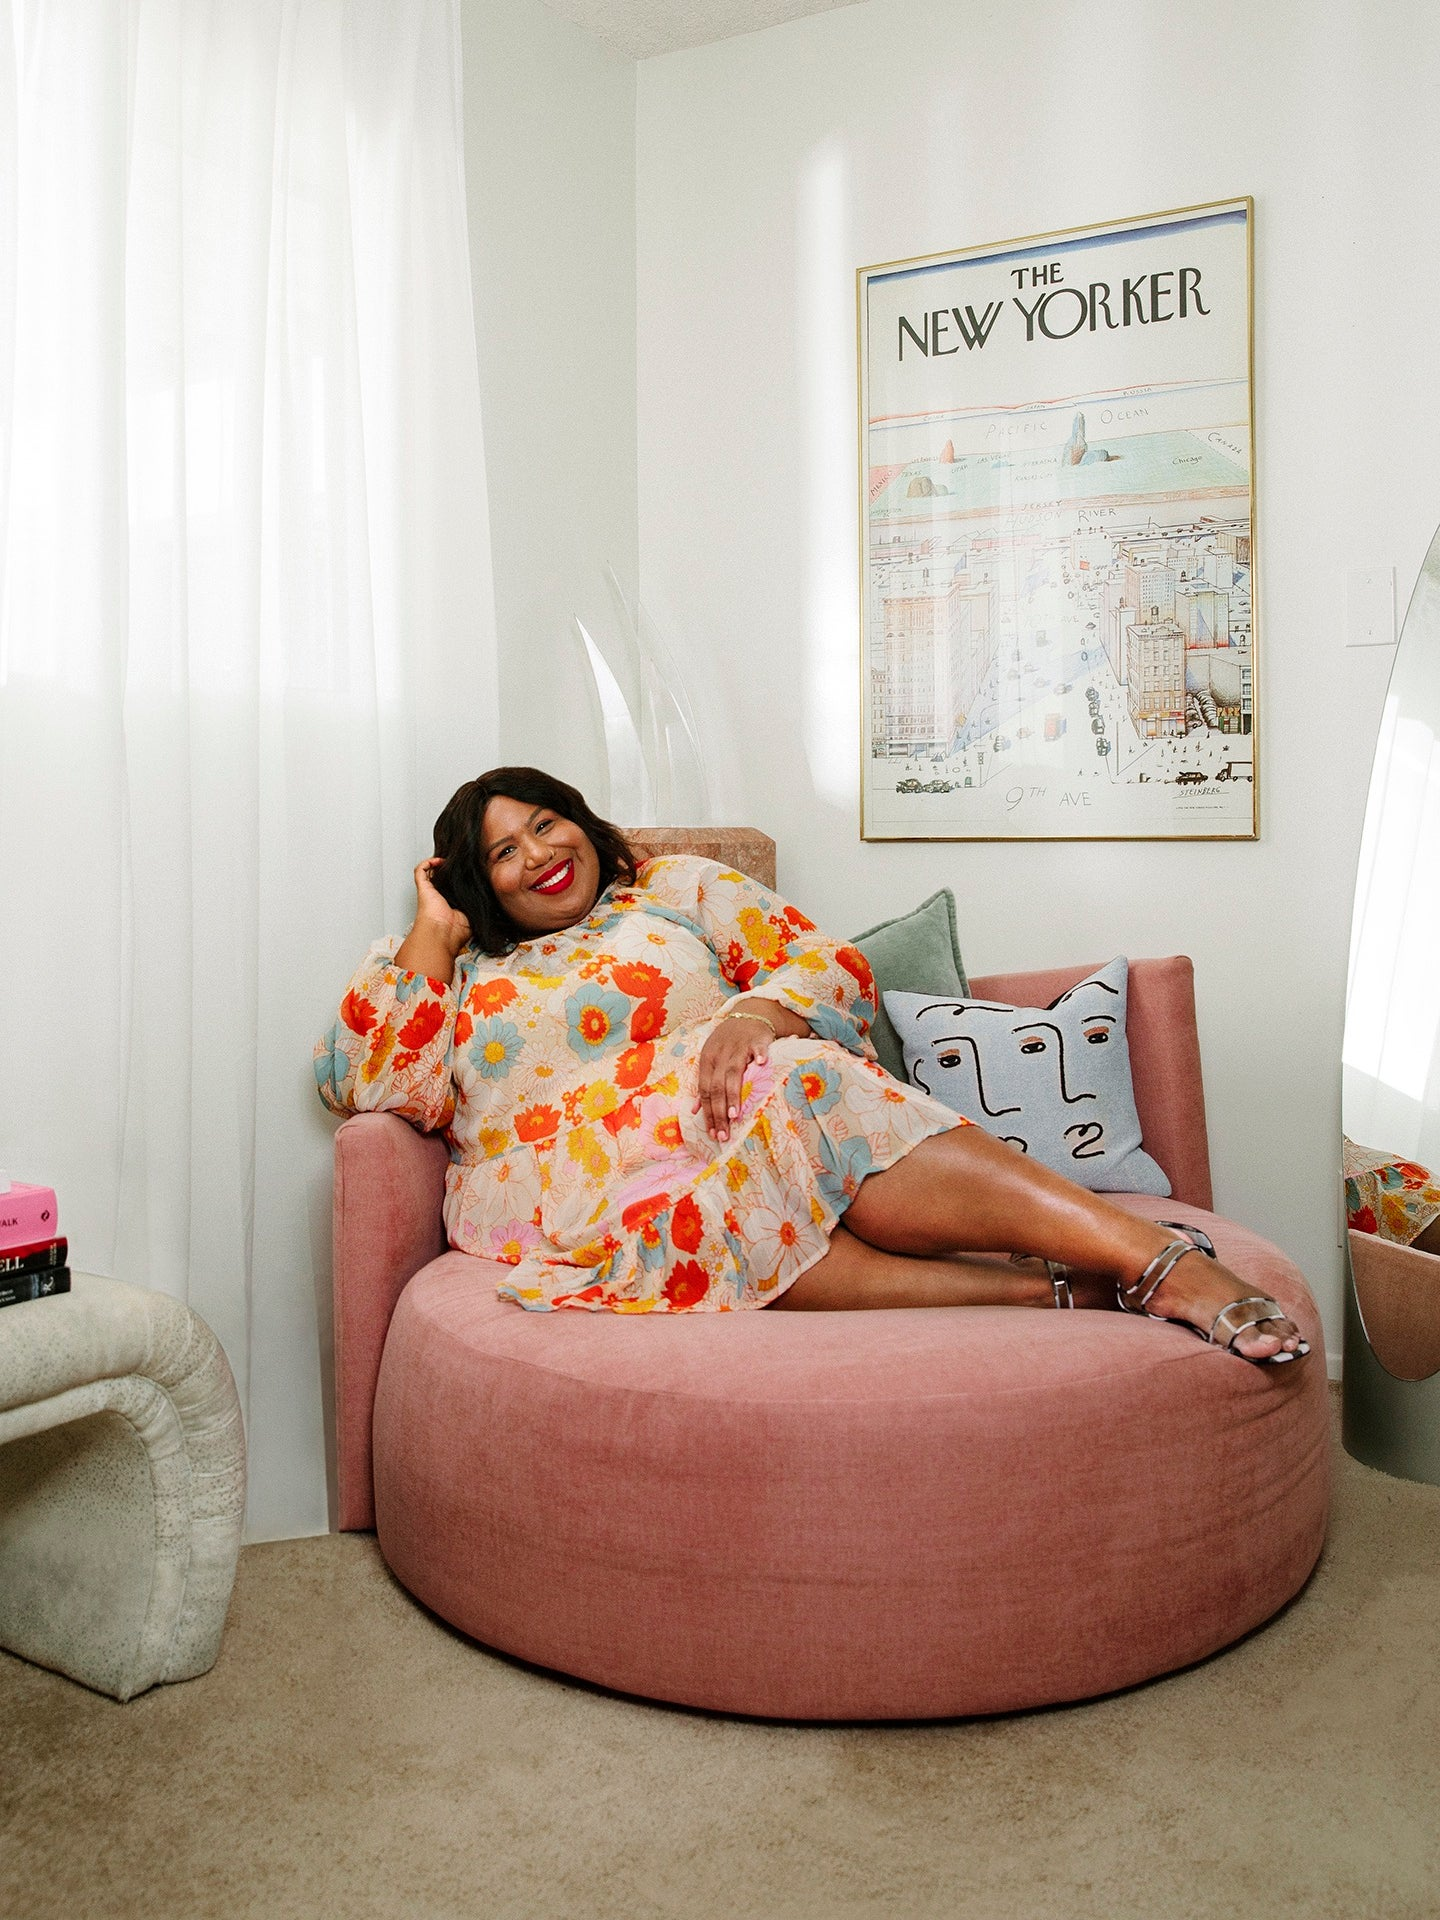 After Kellie Brown Painted Her Bedroom This Hue, She Started Sleeping Like a Baby